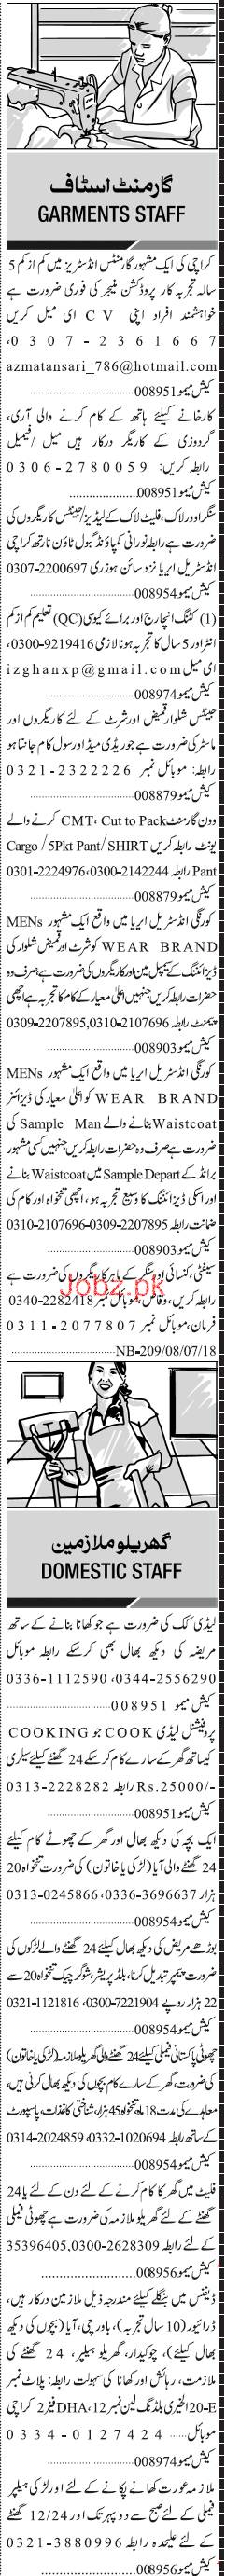 Production Incharge, Cutting Incharge Job Opportunity